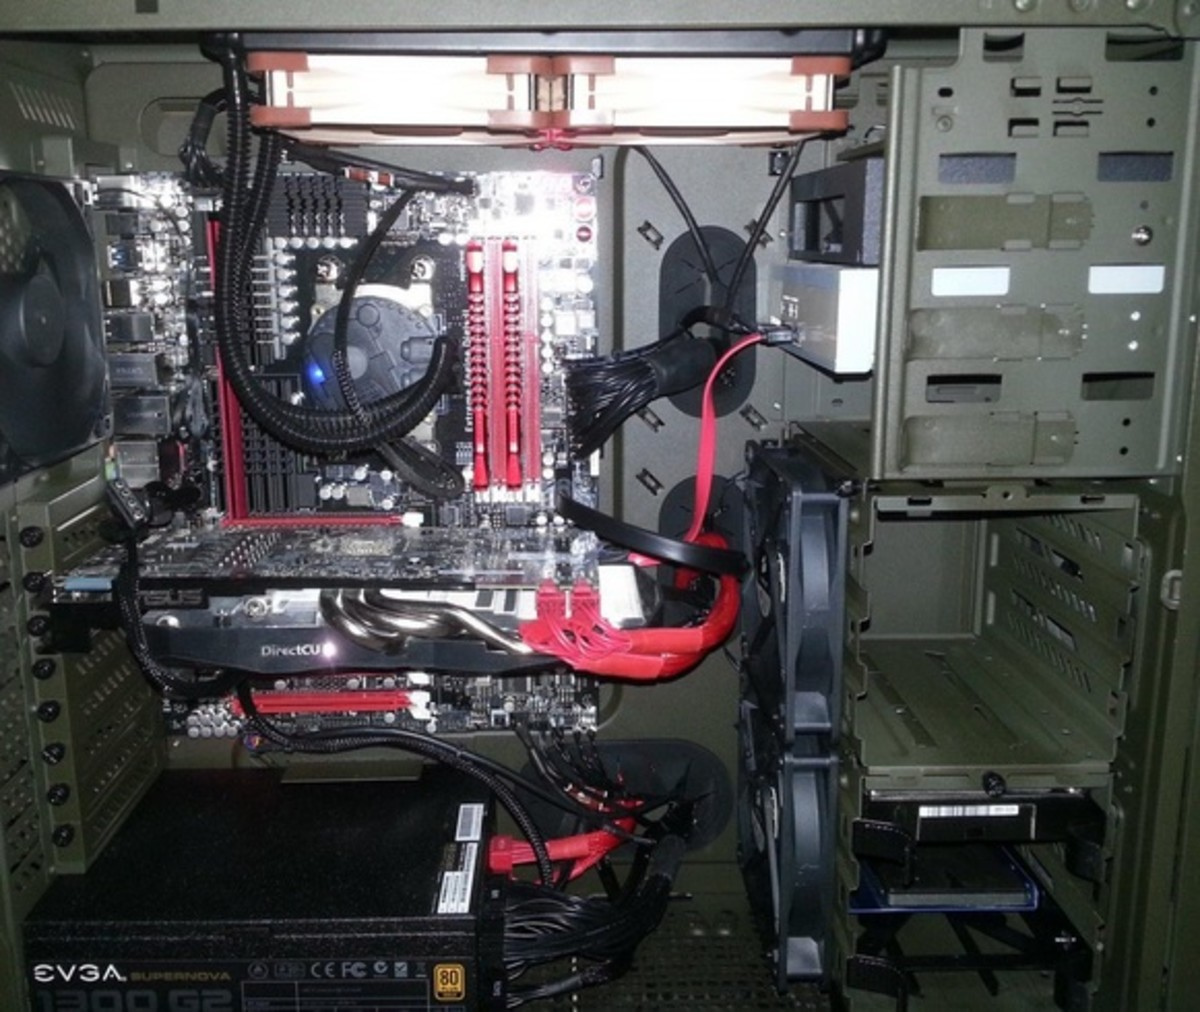 Best Amd Am3 Motherboard For Gaming 2018 Turbofuture Technology